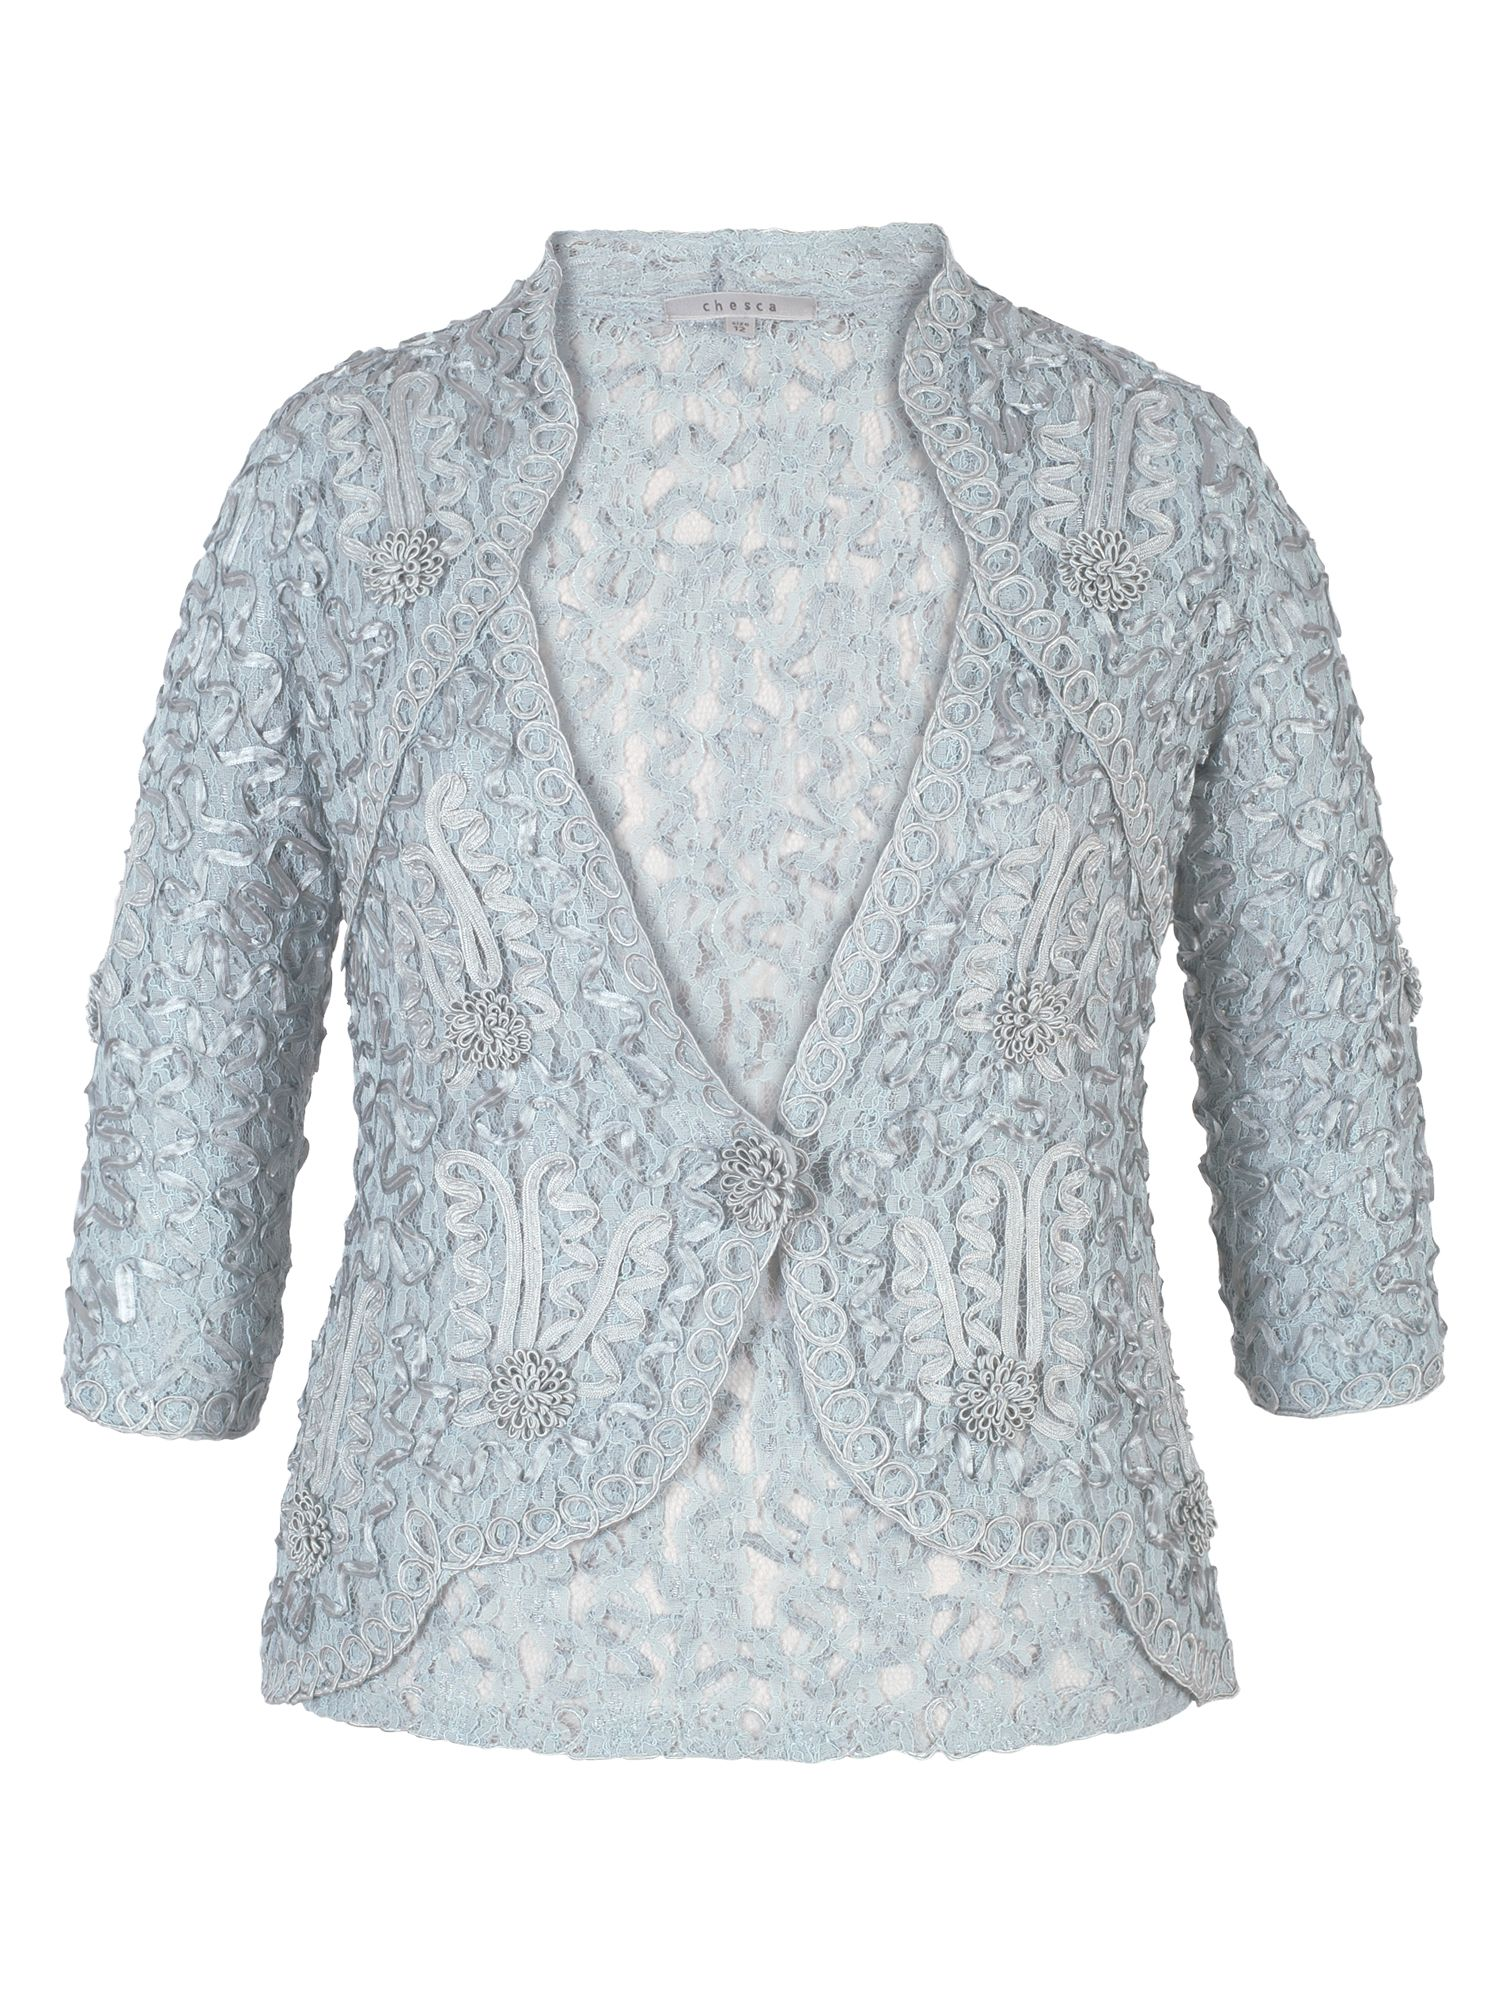 Chesca Lace Jacket with Cornelli Trim, Blue